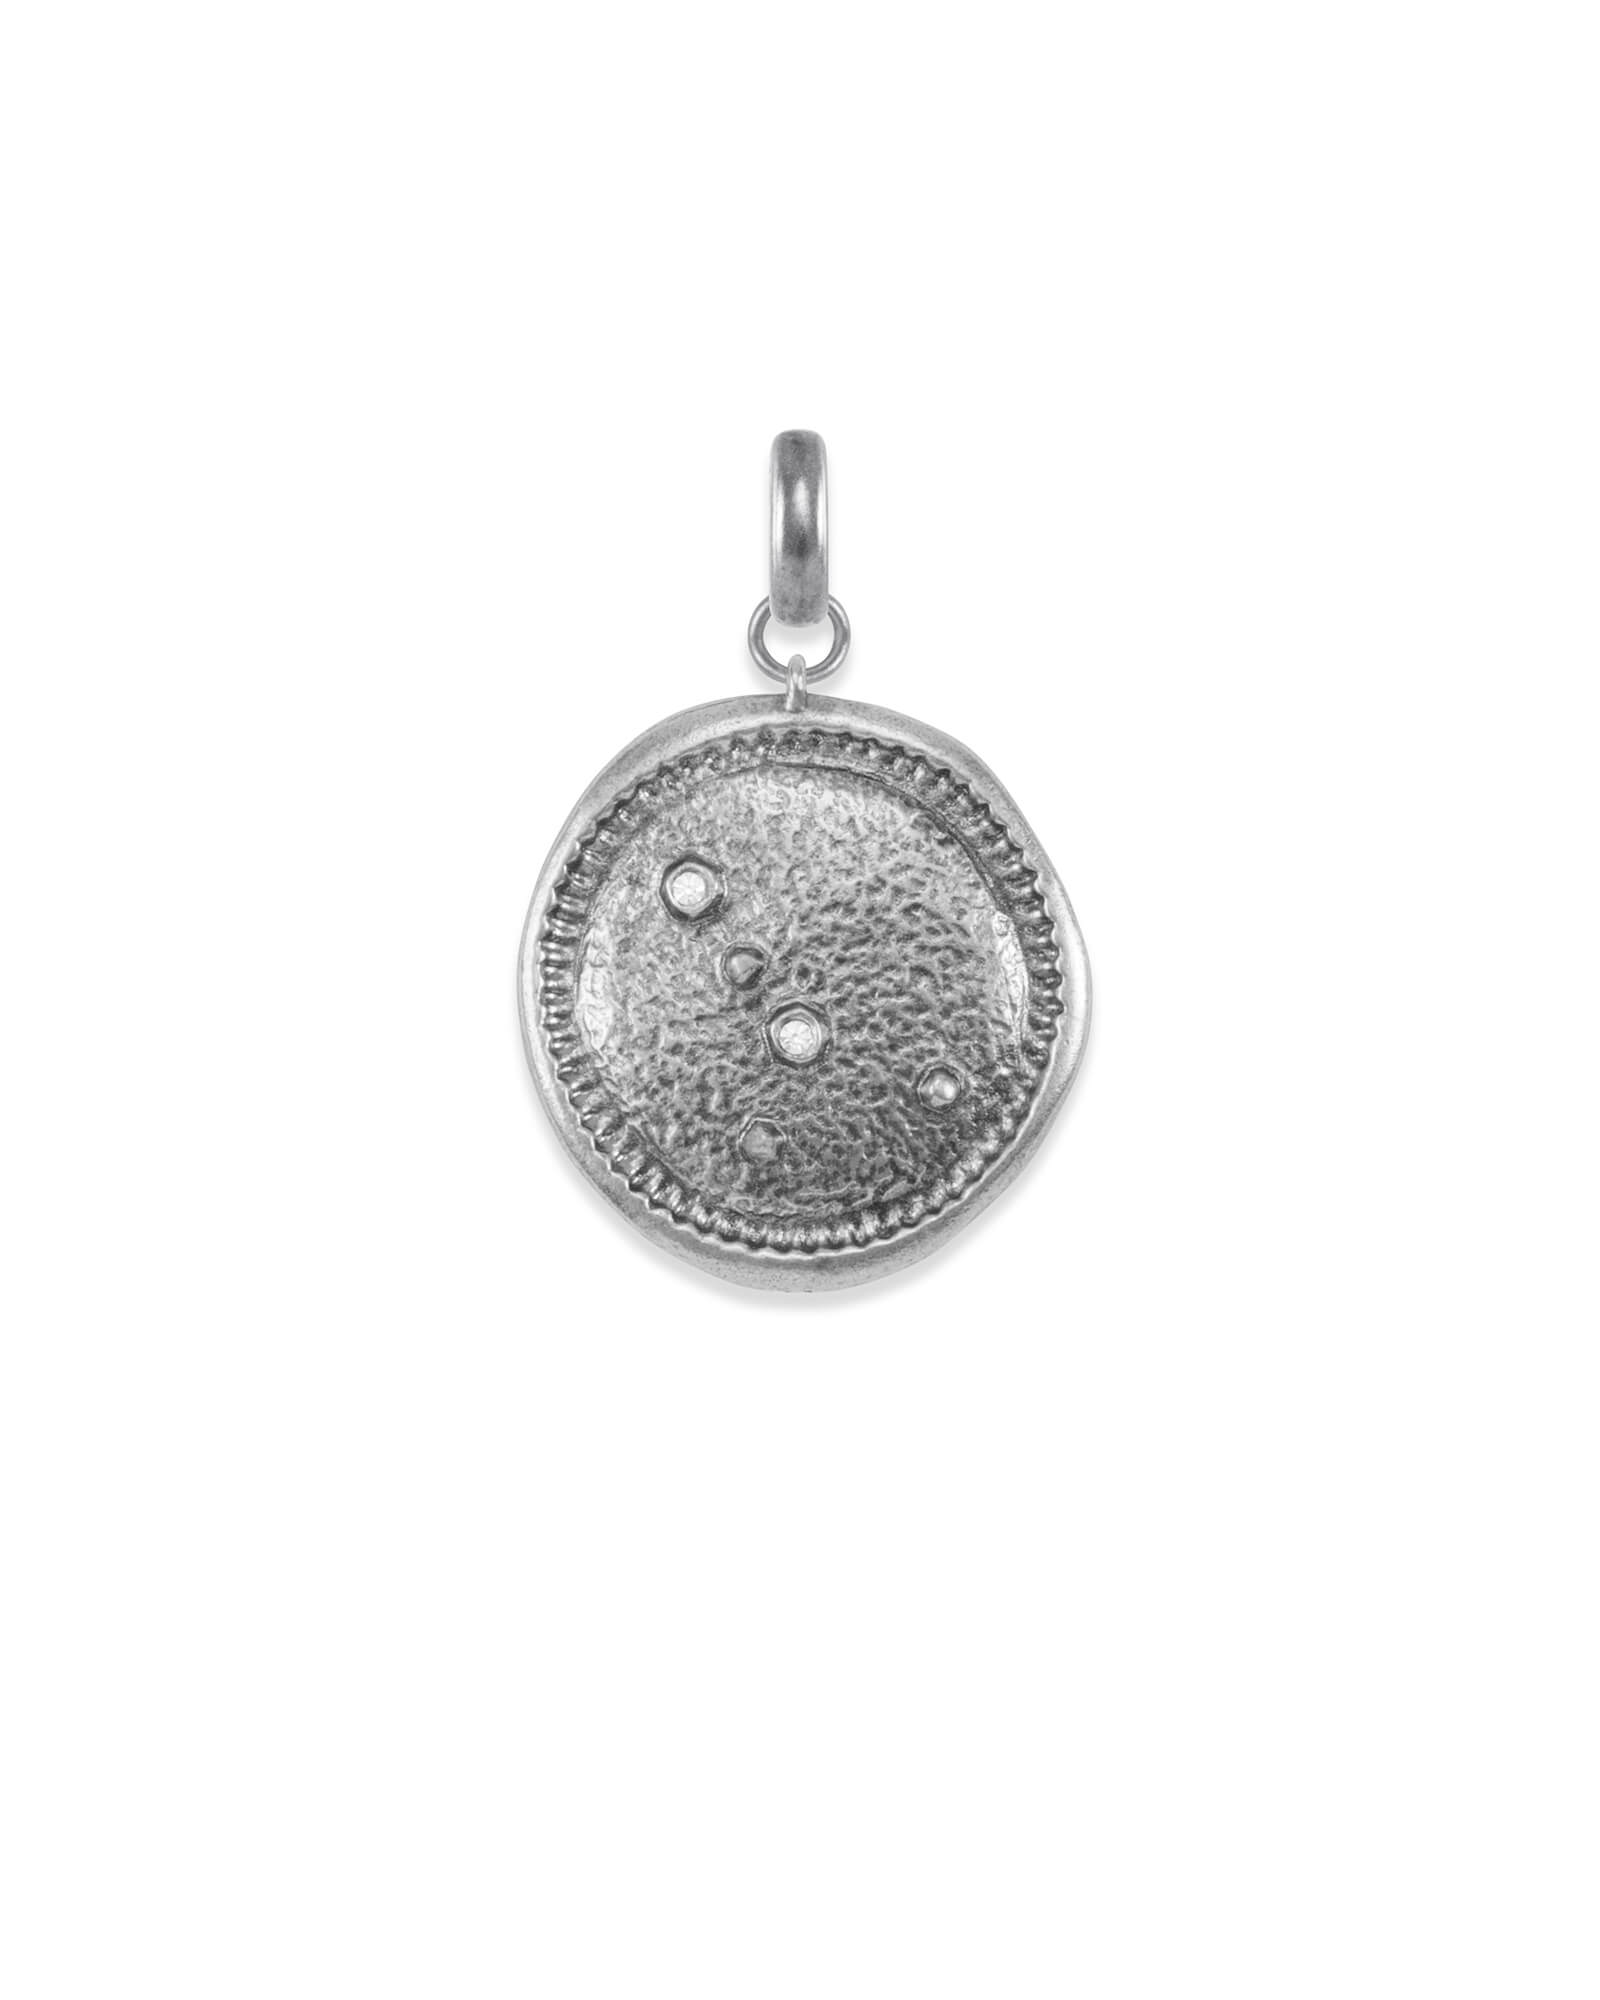 Cancer Coin Charm in Vintage Silver